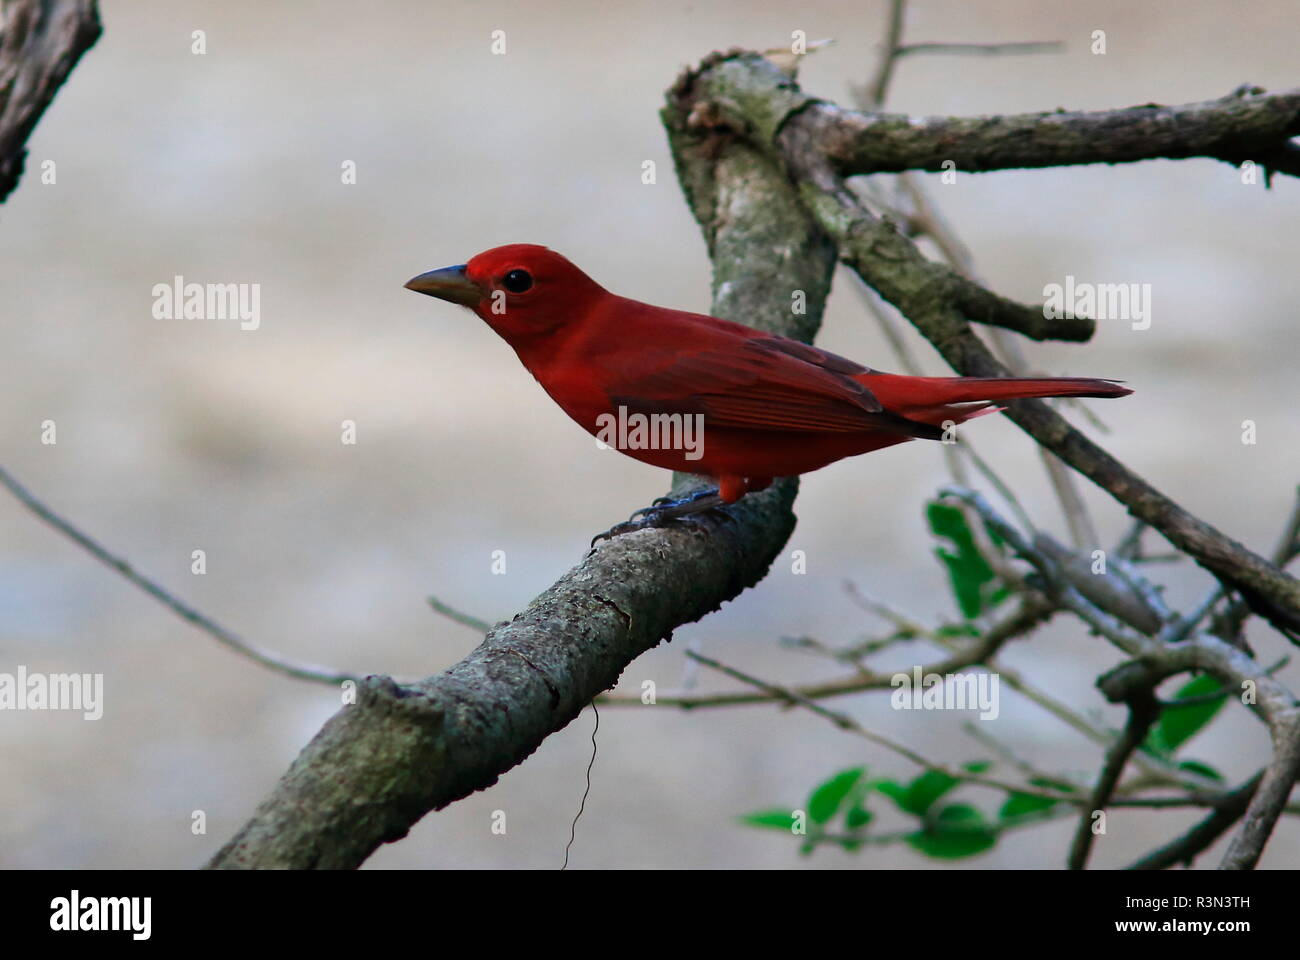 Scarlet tanager (Piranga olivacea) on a branch, Costa Rica - Stock Image